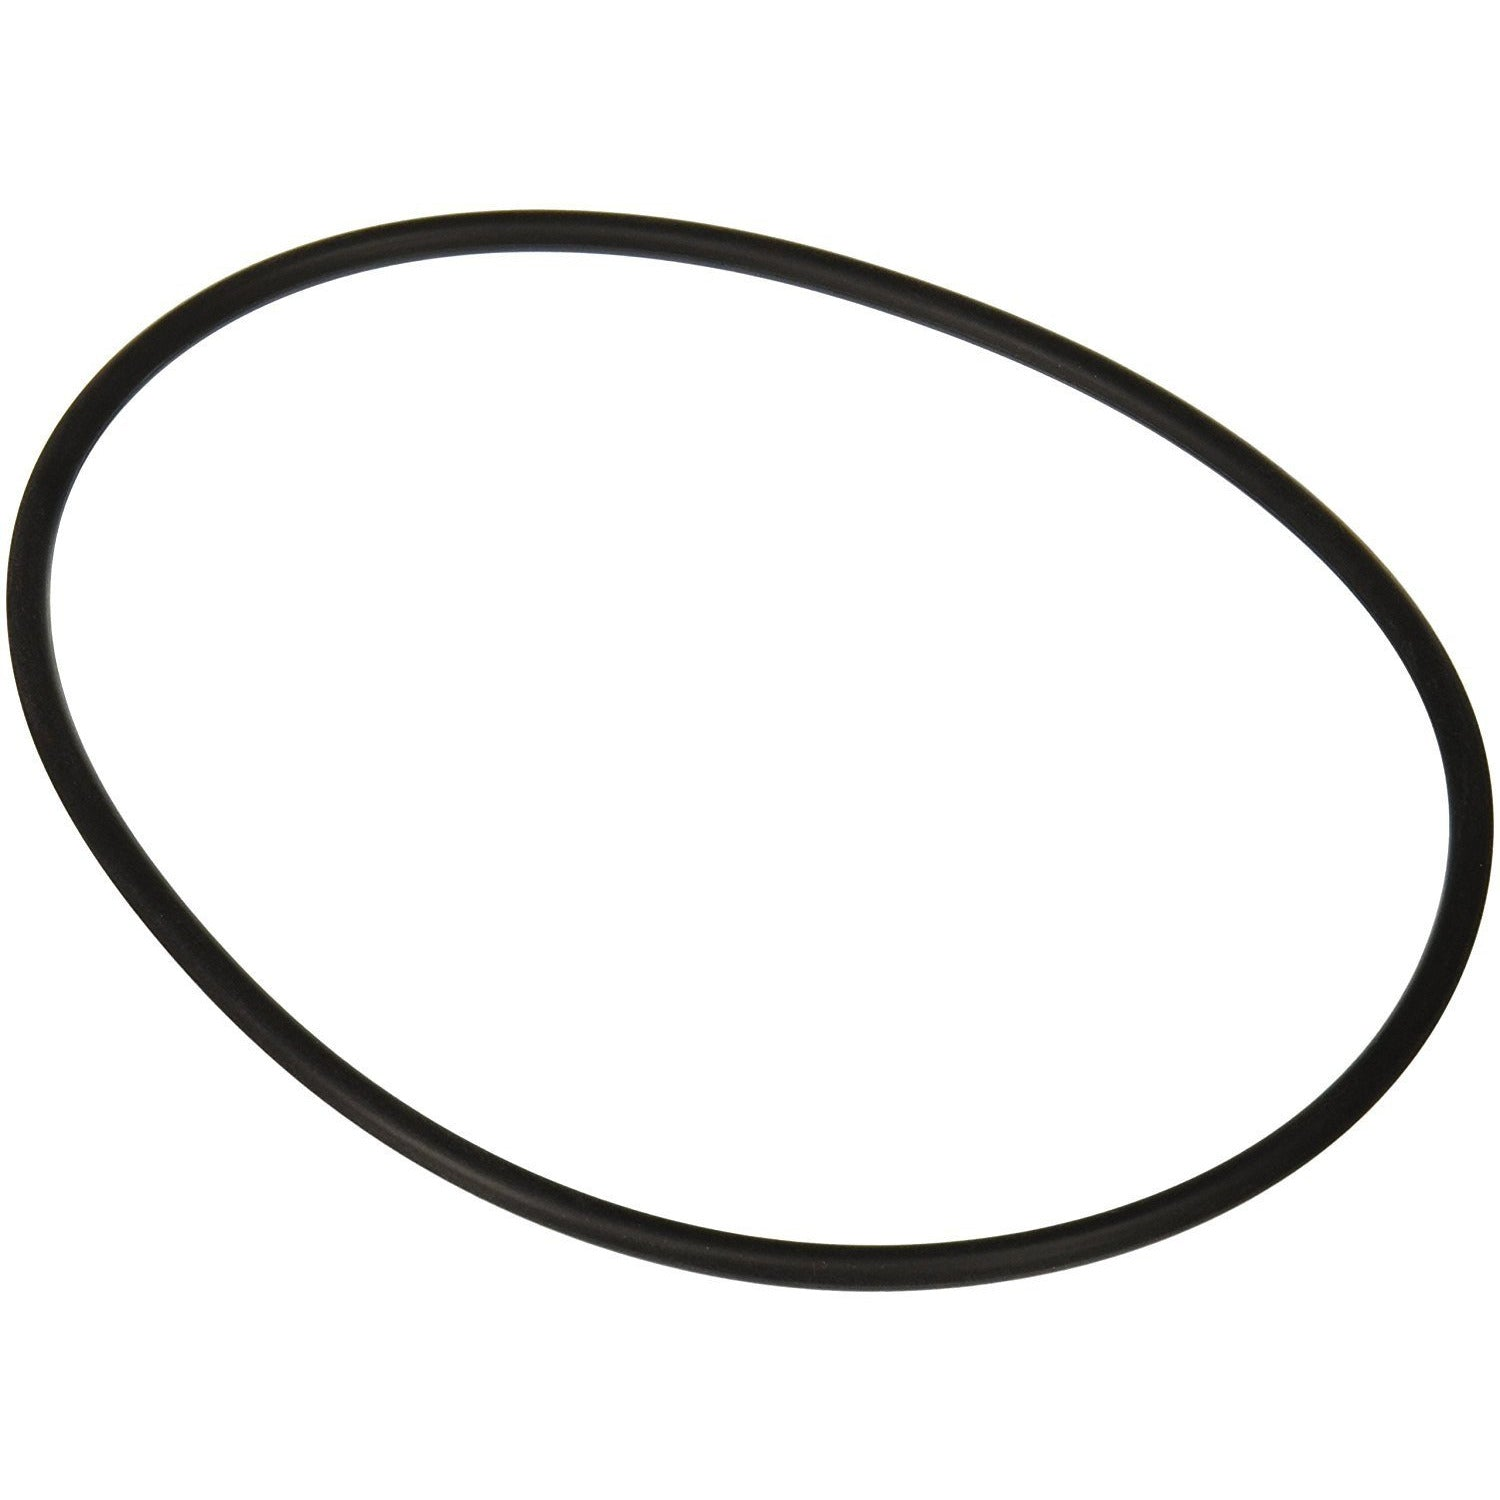 King Perform-Max Feeder Lid O-ring 01229426 (91-prior)